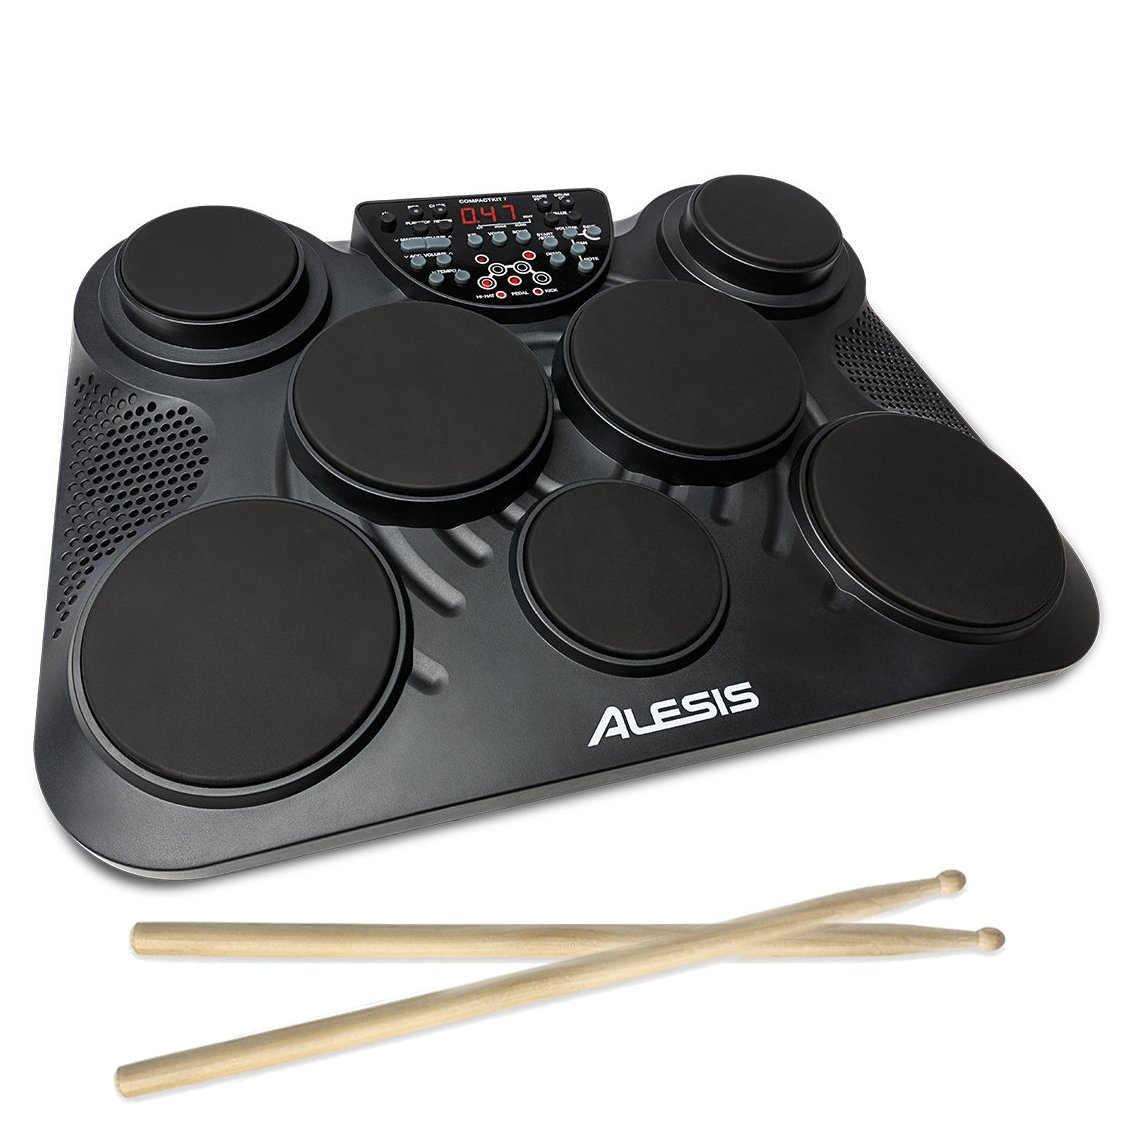 Alesis Compactkit 7 Ultra Portable Pad Electronic Dont Know If All Drum Switches Are The Same Maybe They Table Top Kit With Velocity Sensitive Pads 265 Sounds Usb Midi Output